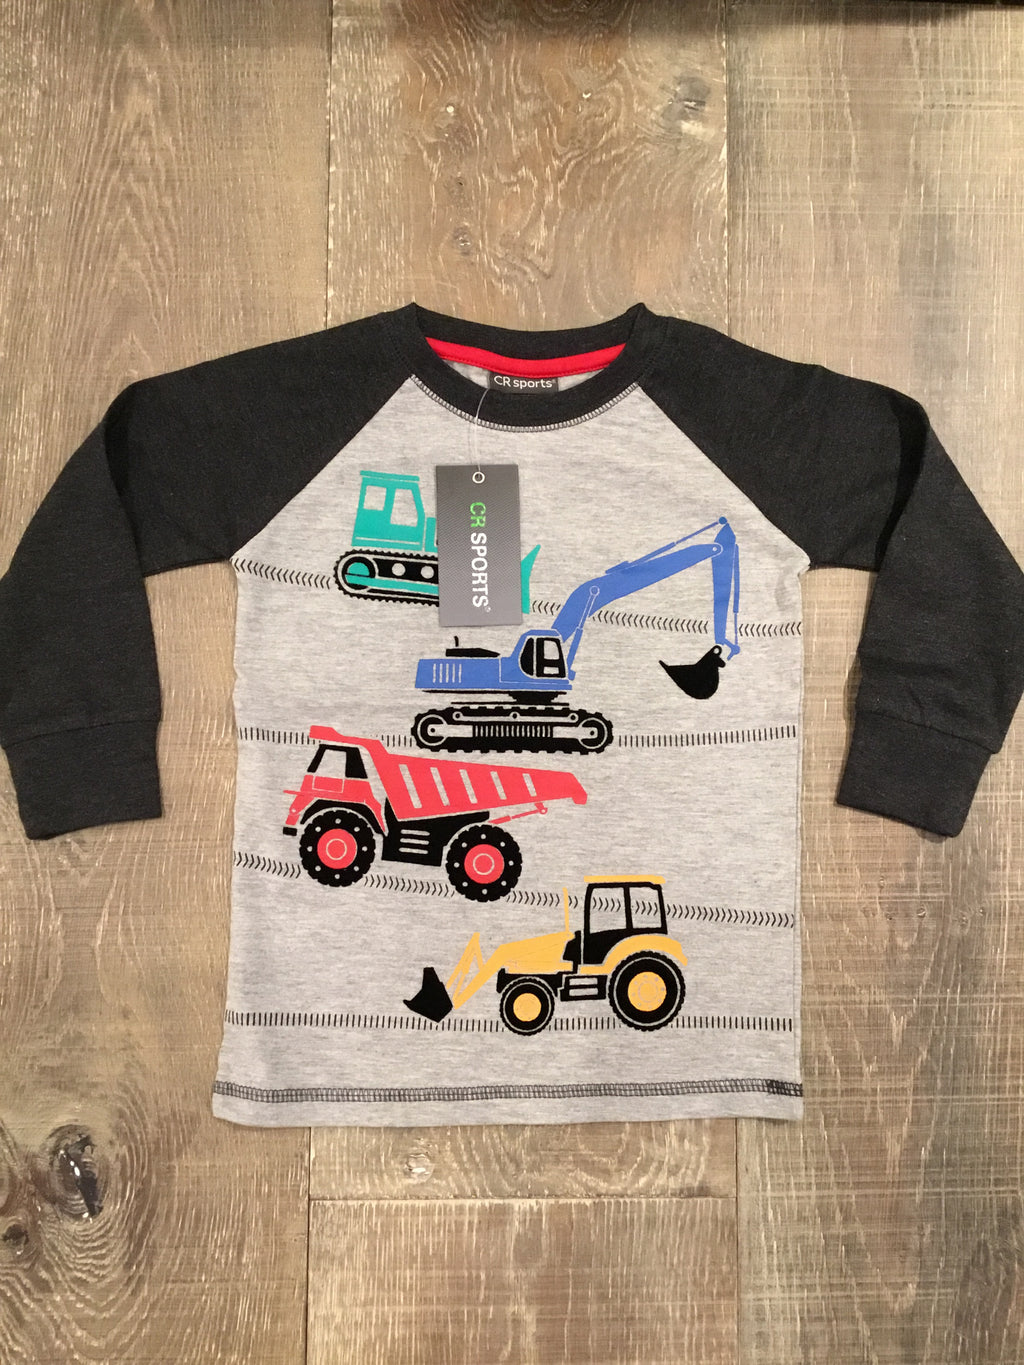 Construction Crew Stack Raglan Sleeve Shirt